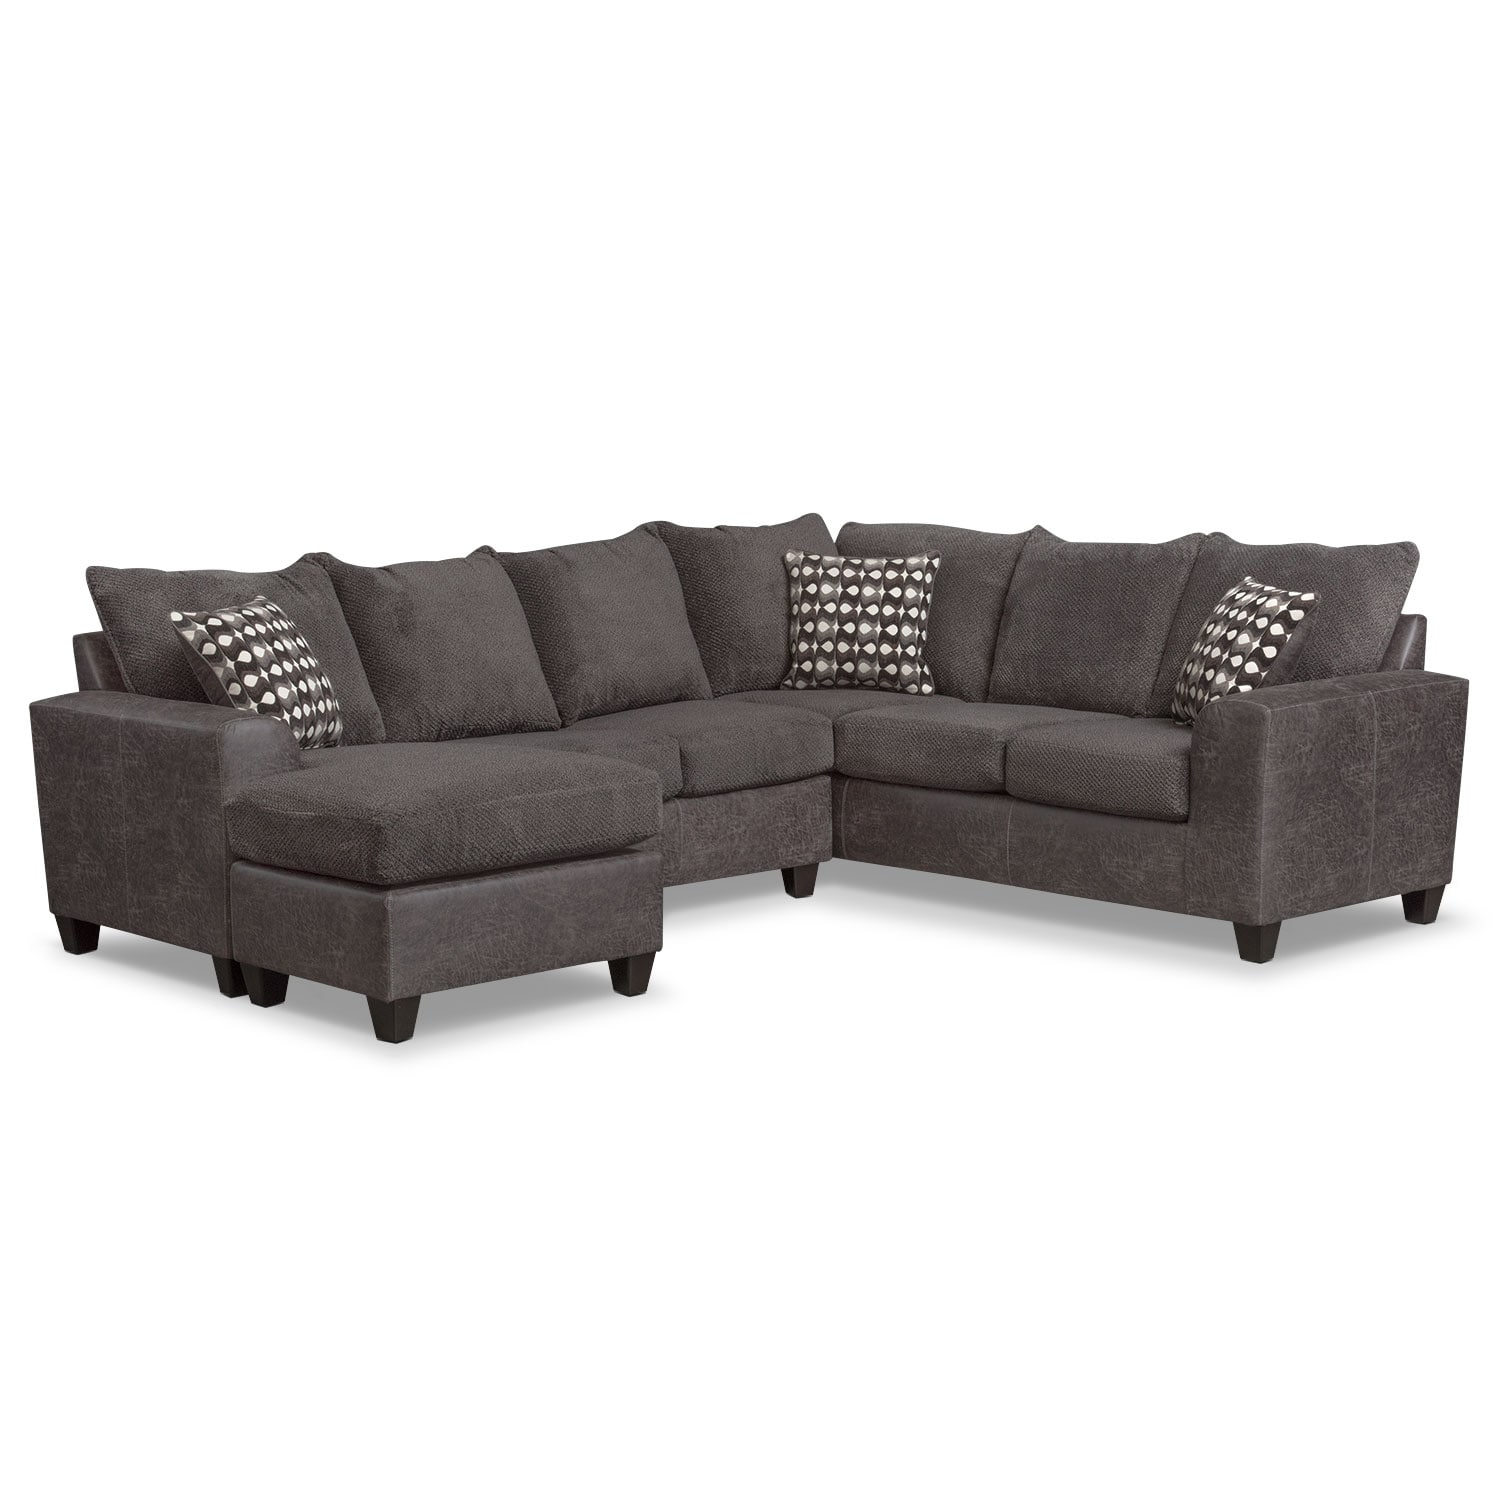 brando 3piece sectional with modular chaise smoke by factory outlet